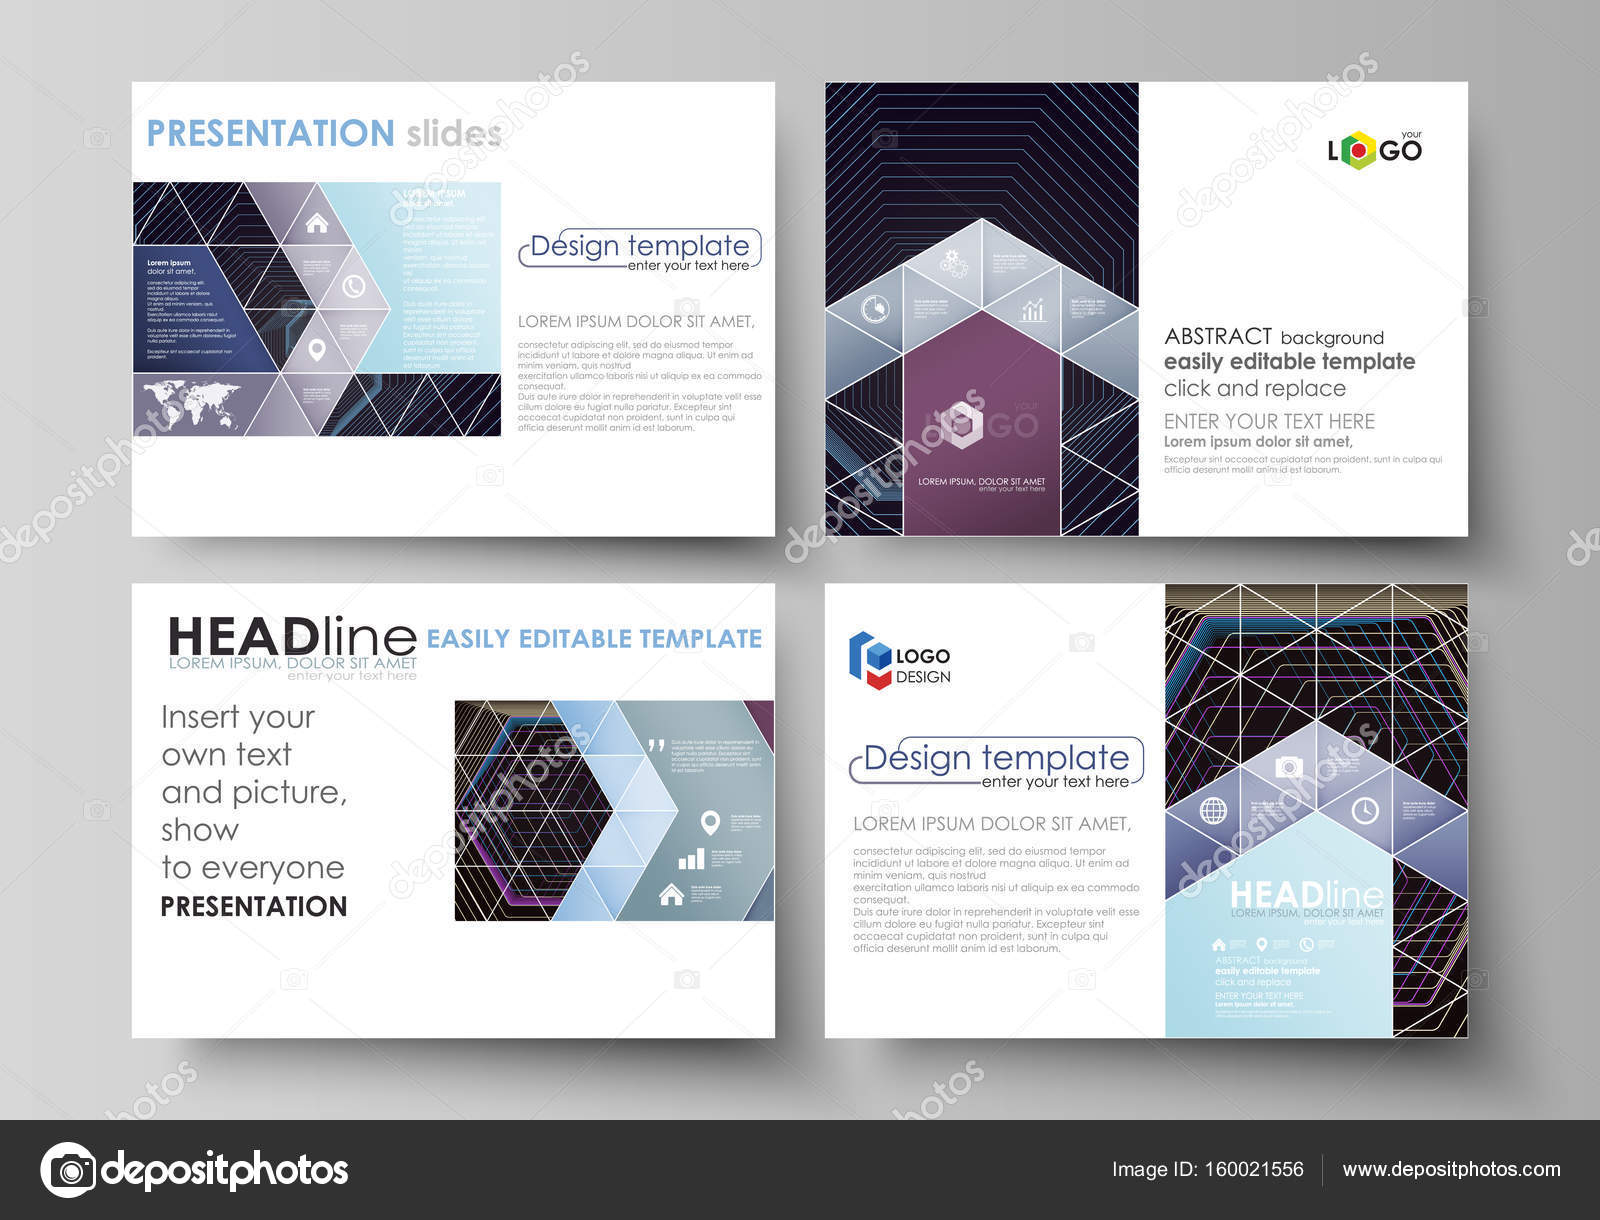 business templates for presentation slides vector layouts in flat